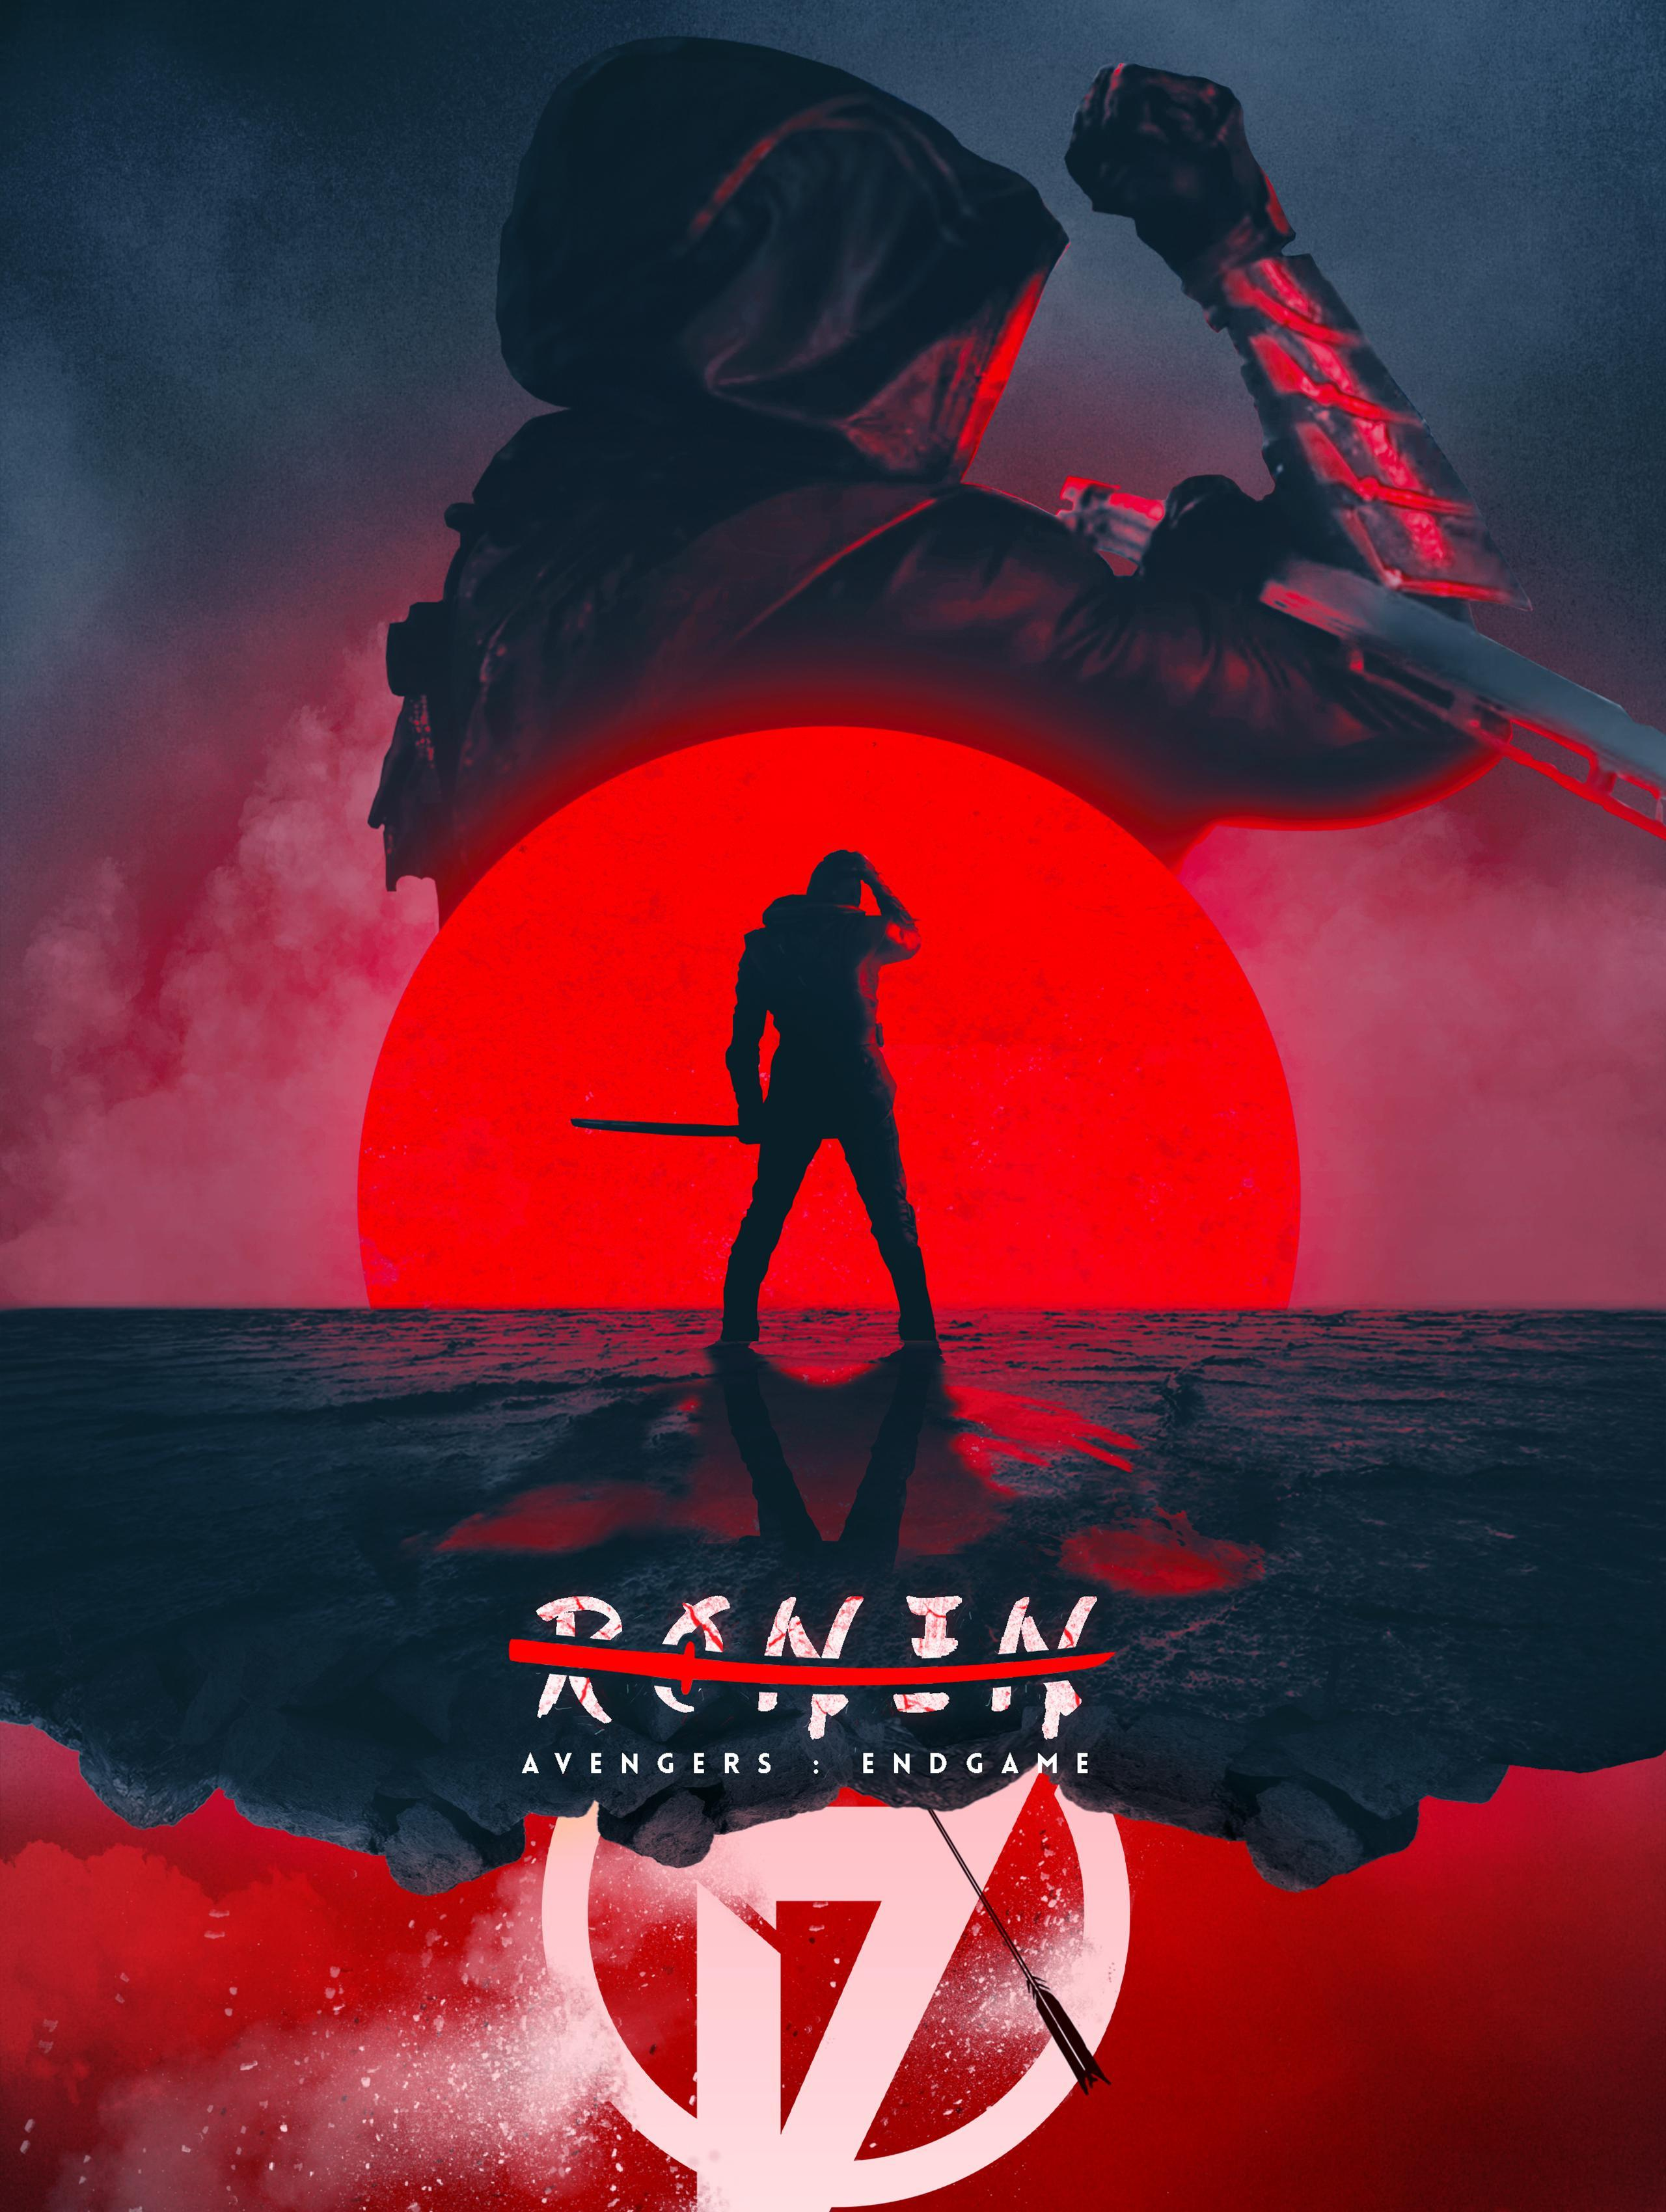 Wallpapers Ronin, Avengers: Endgame, Avengers 4, Fan art, HD